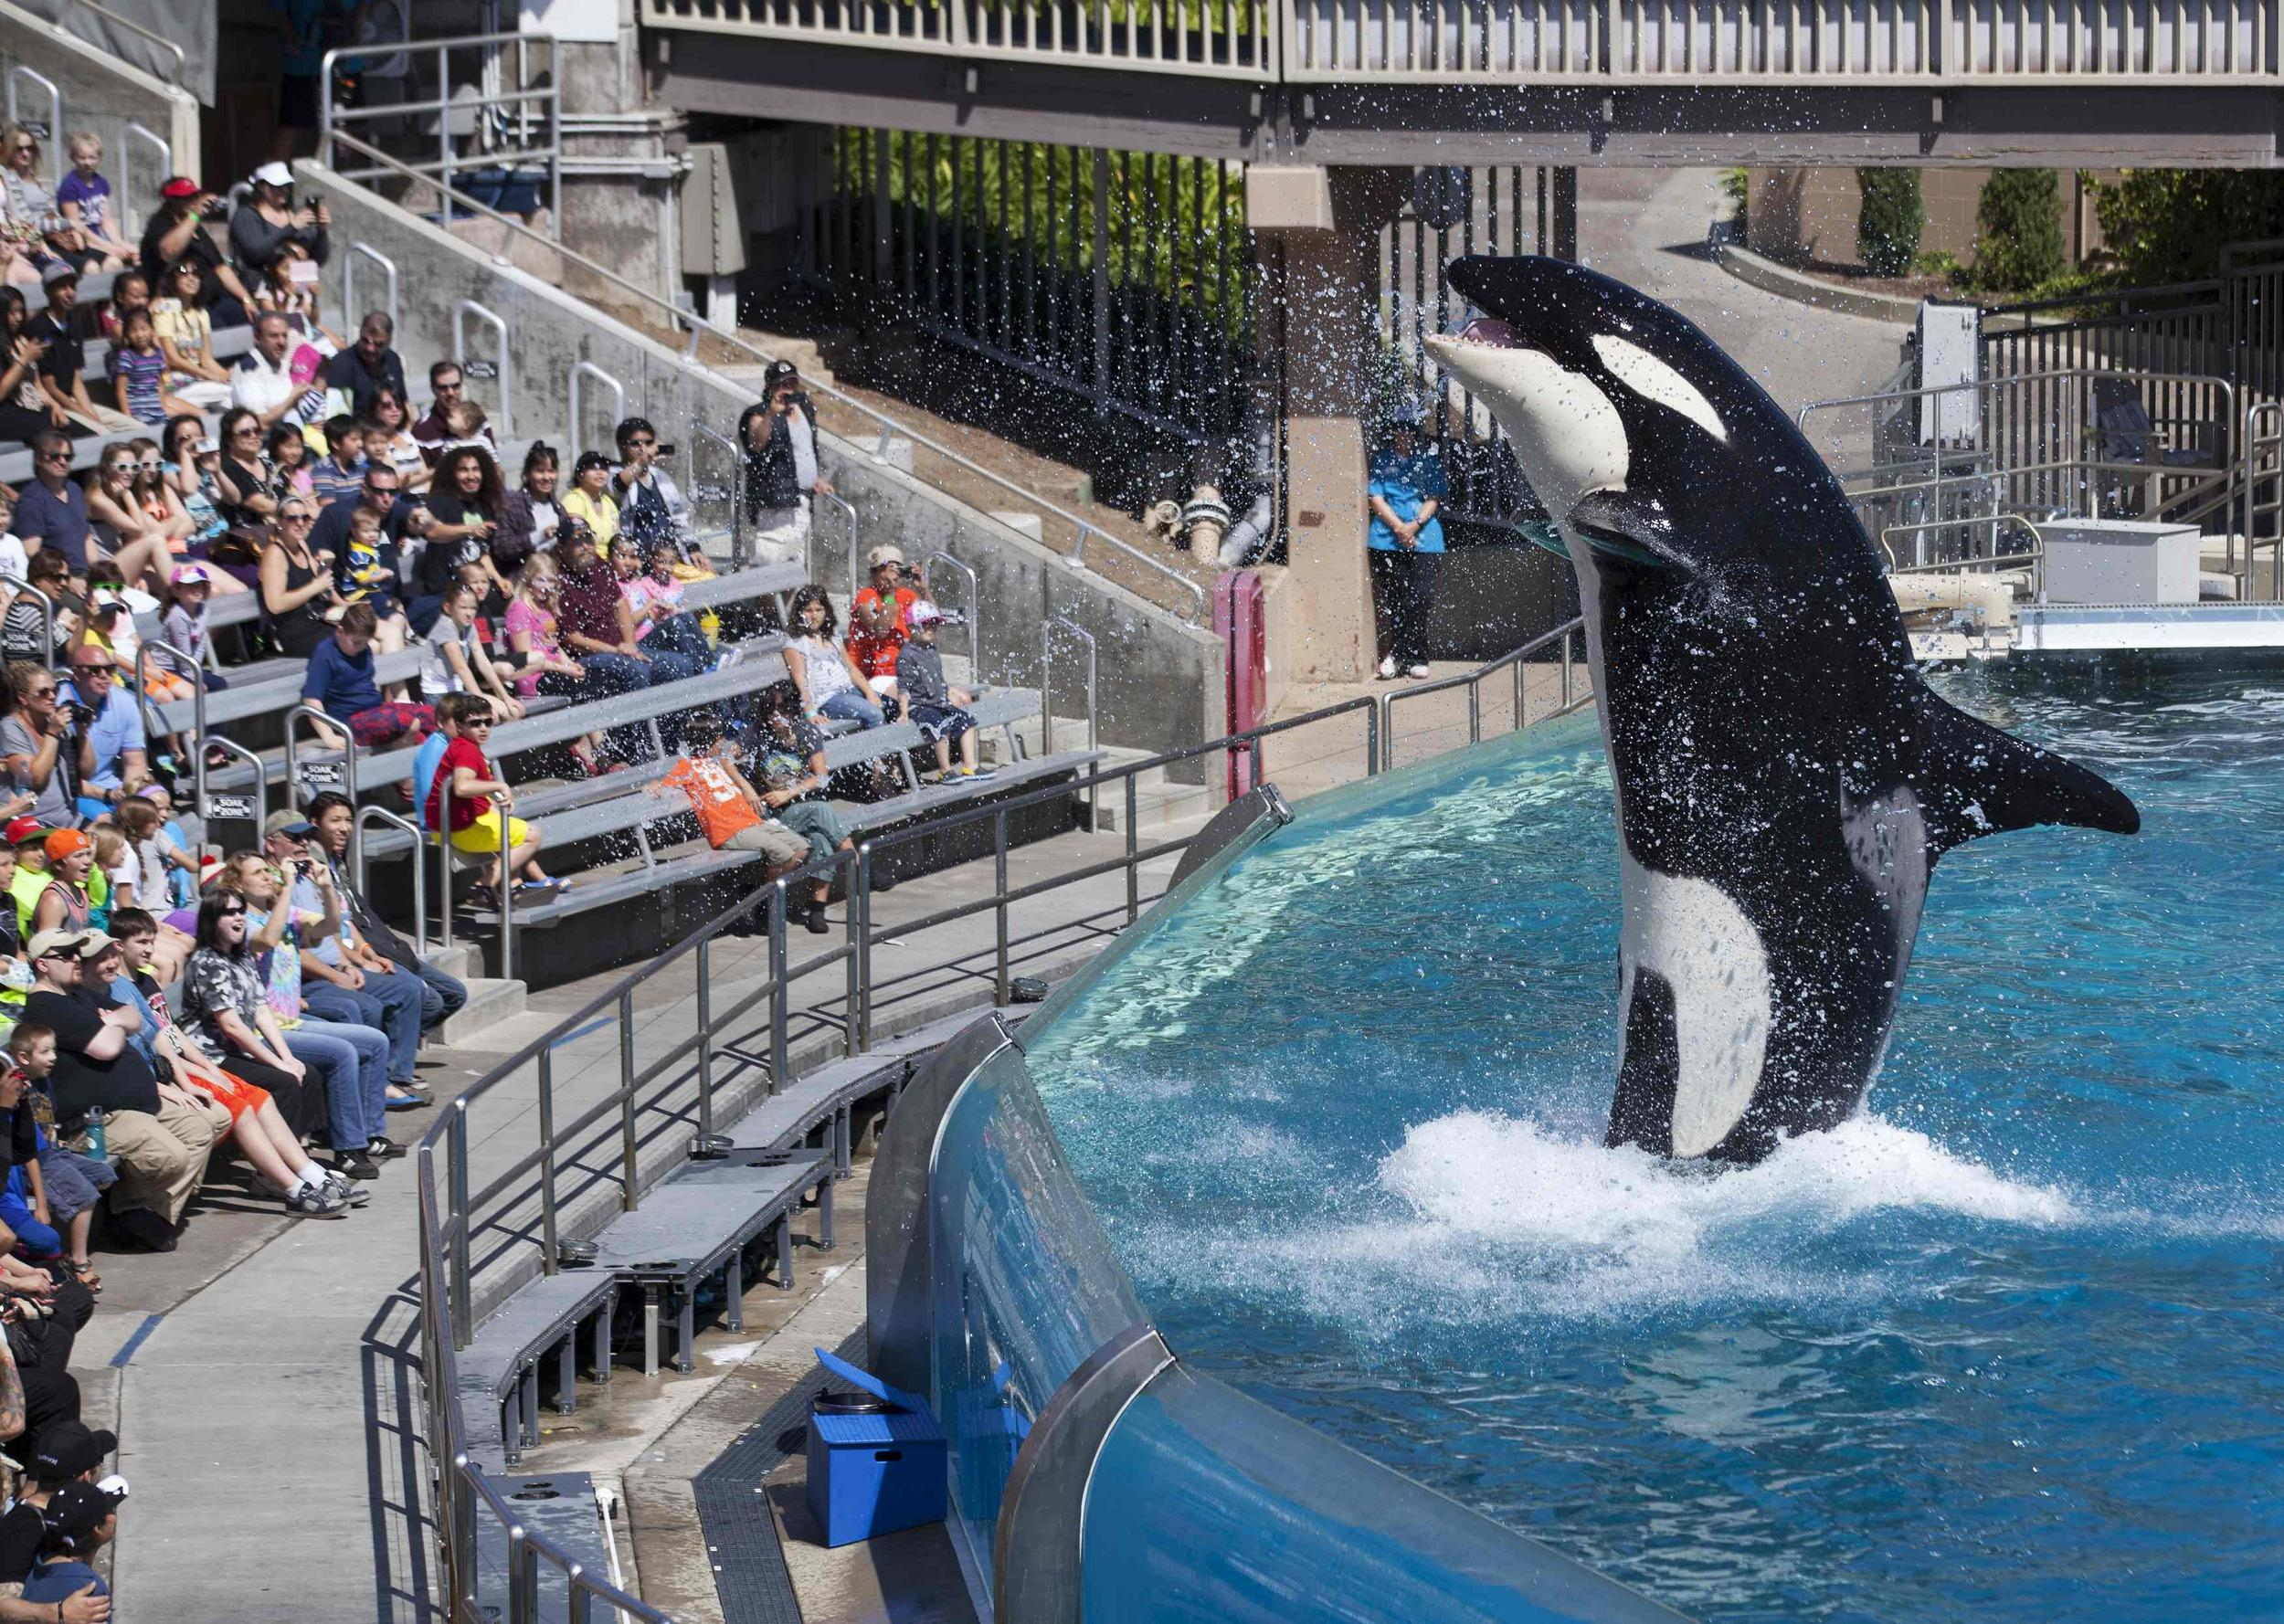 Image: Visitors attend a show featuring orcas during a visit to SeaWorld on March 19, 2014, in San Diego.